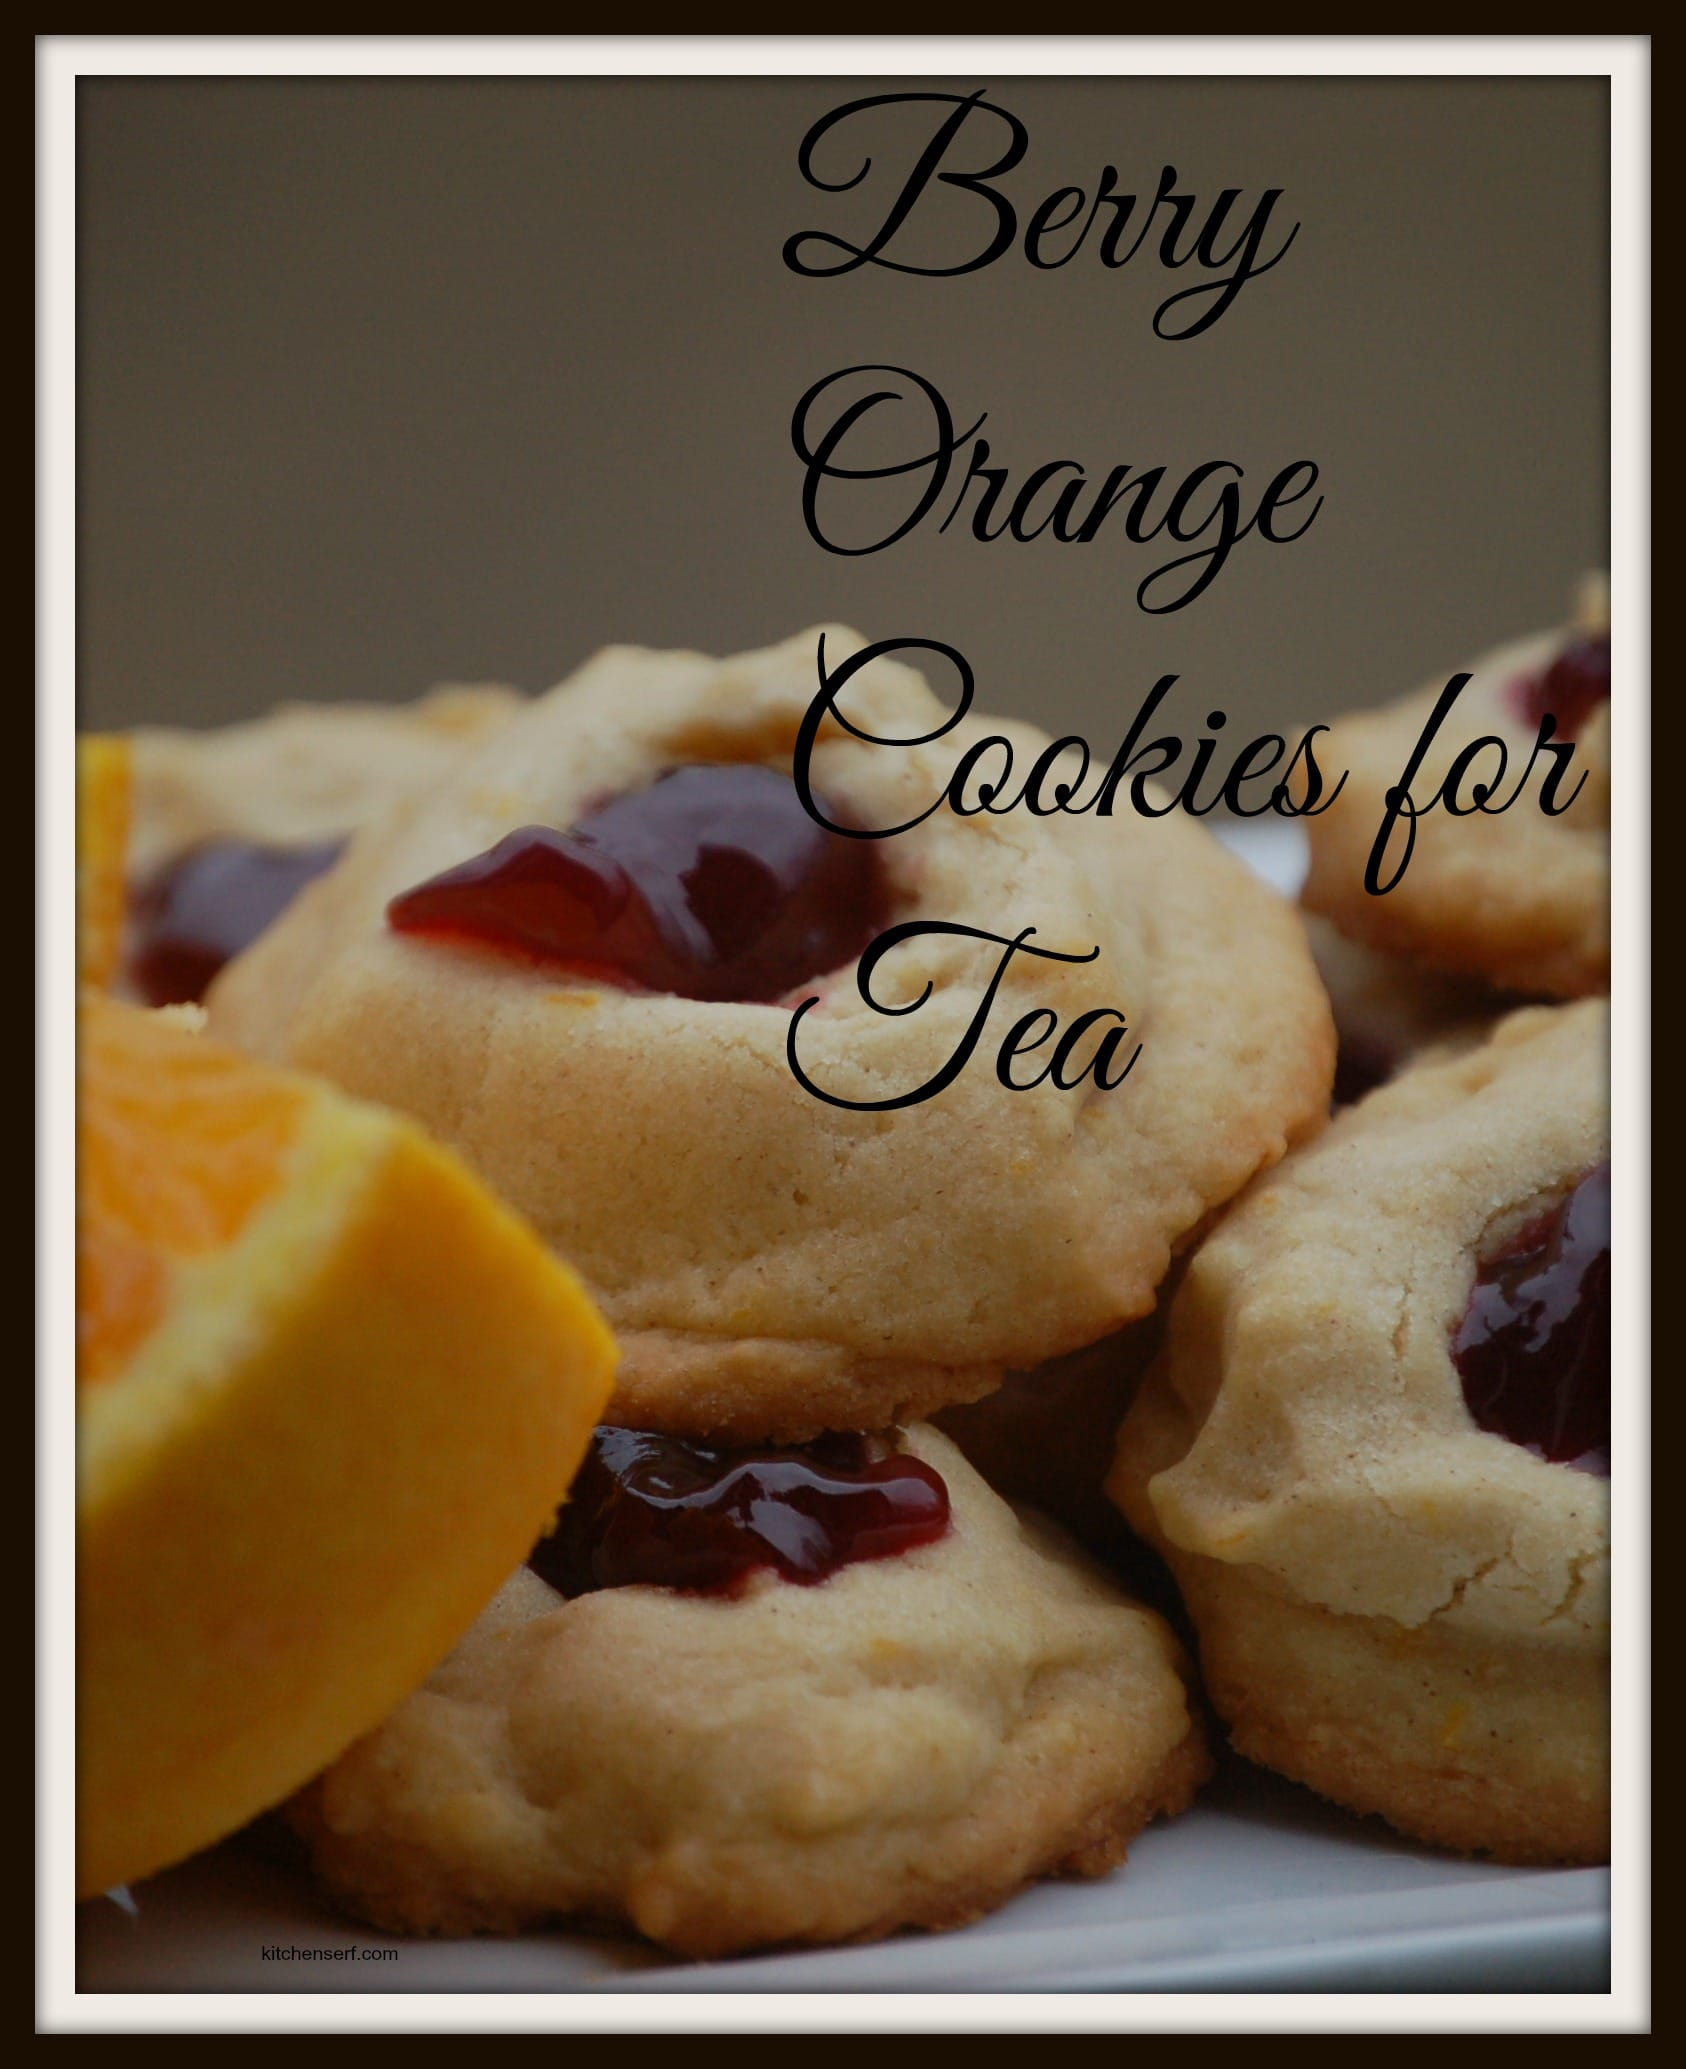 Marilla Cuthbert's Berry Orange Cookies